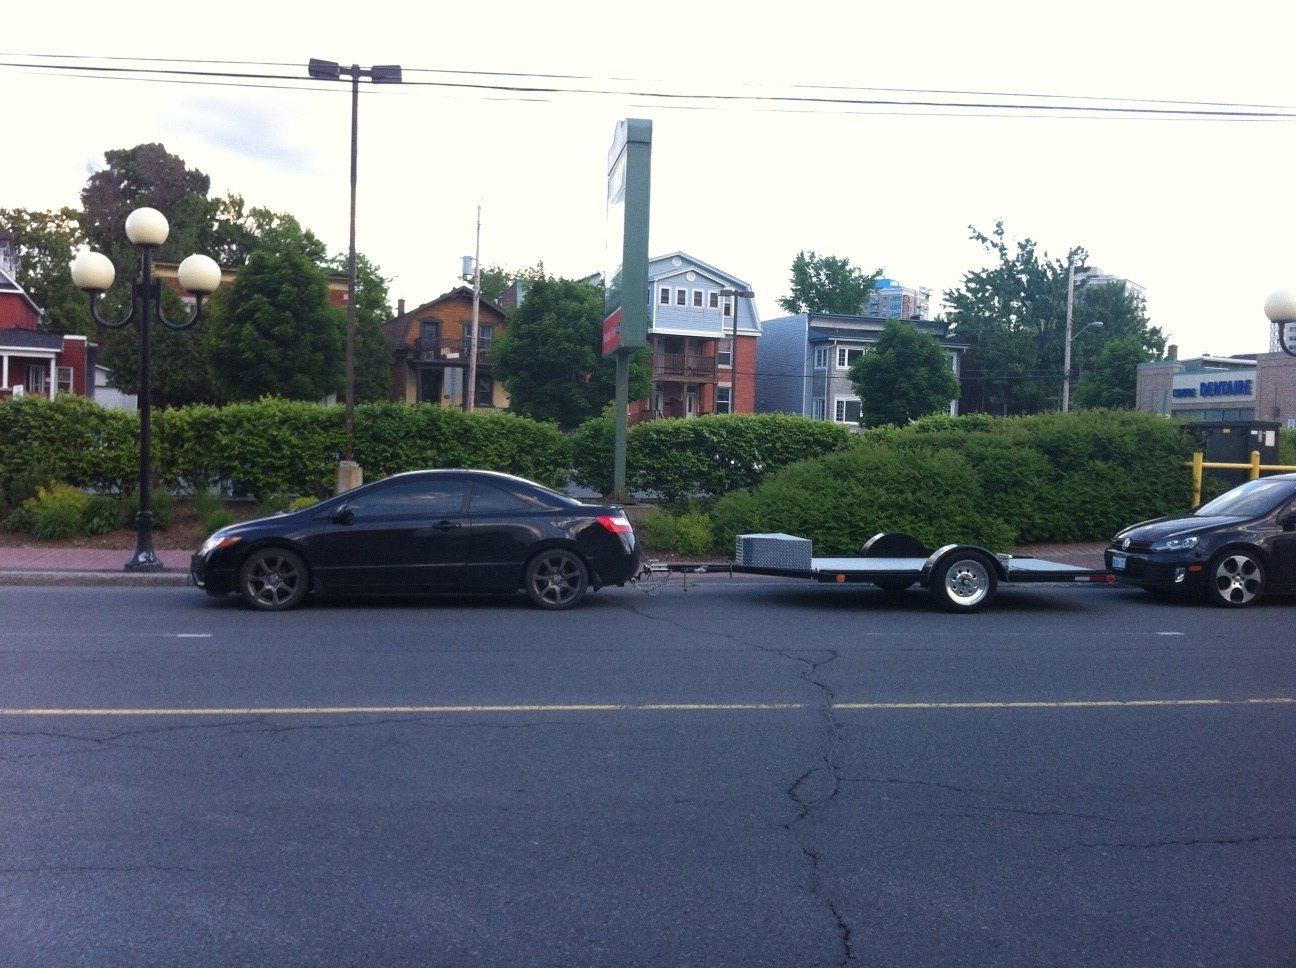 Honda Accord: Towing Your Vehicle